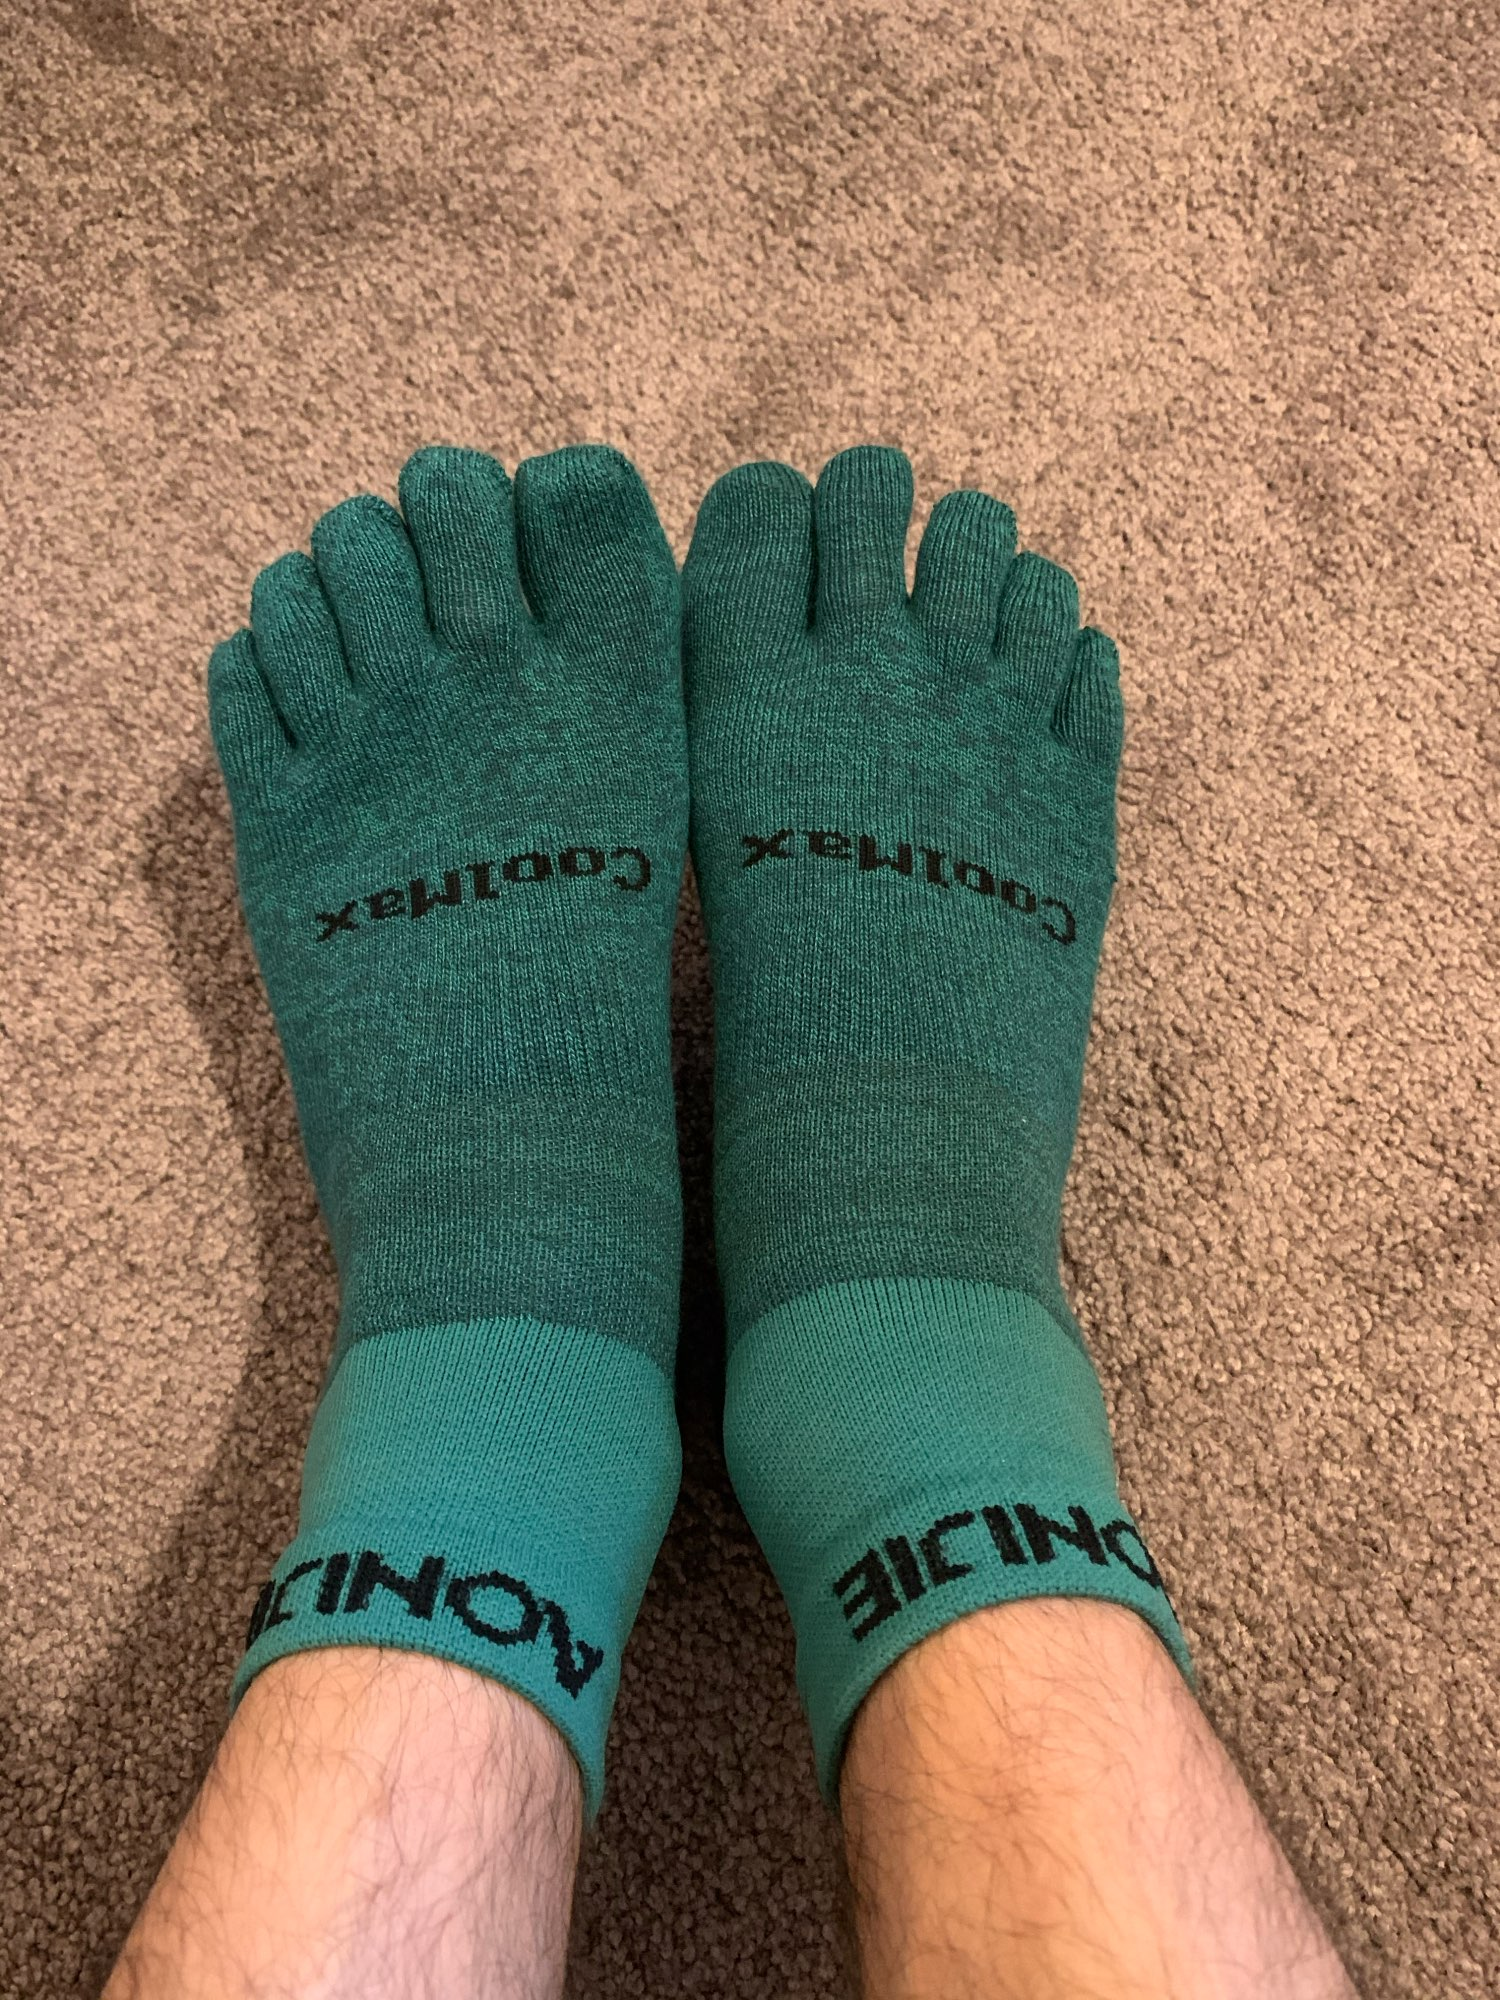 Solid Color Coolmax Athletic Toe Socks photo review